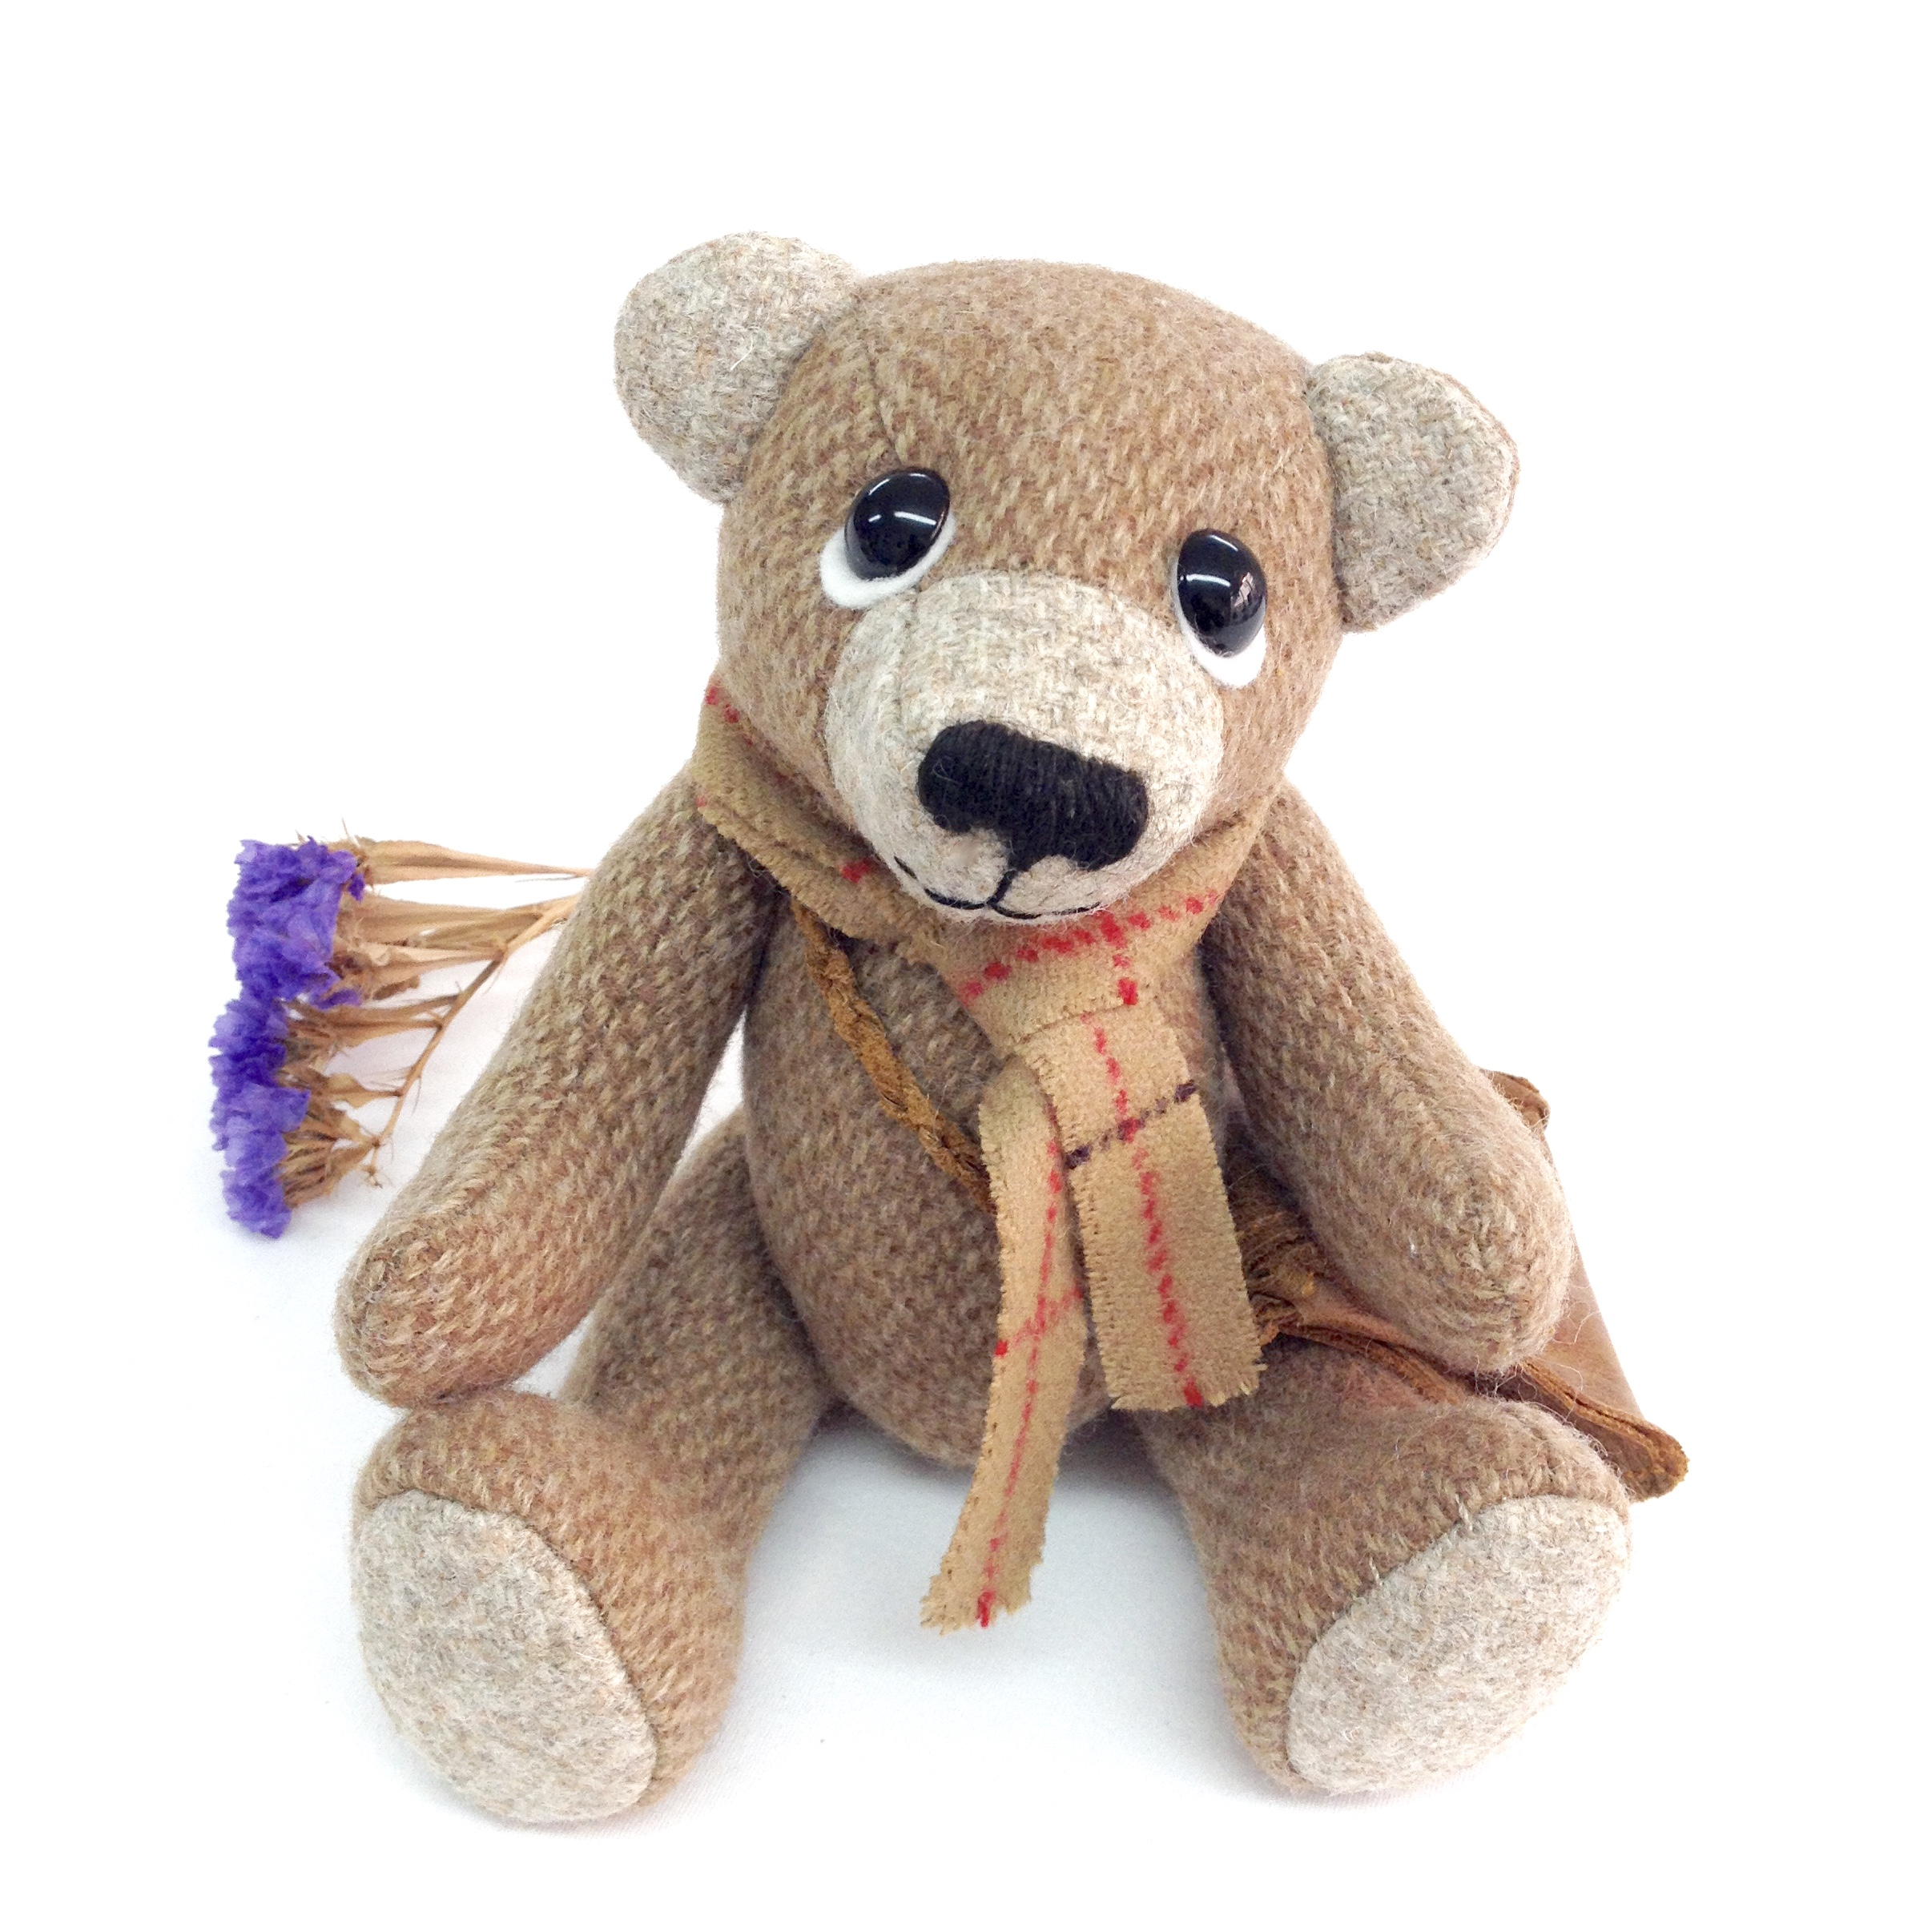 Otis artist bear by Laura Mirjami | Mirjami Design